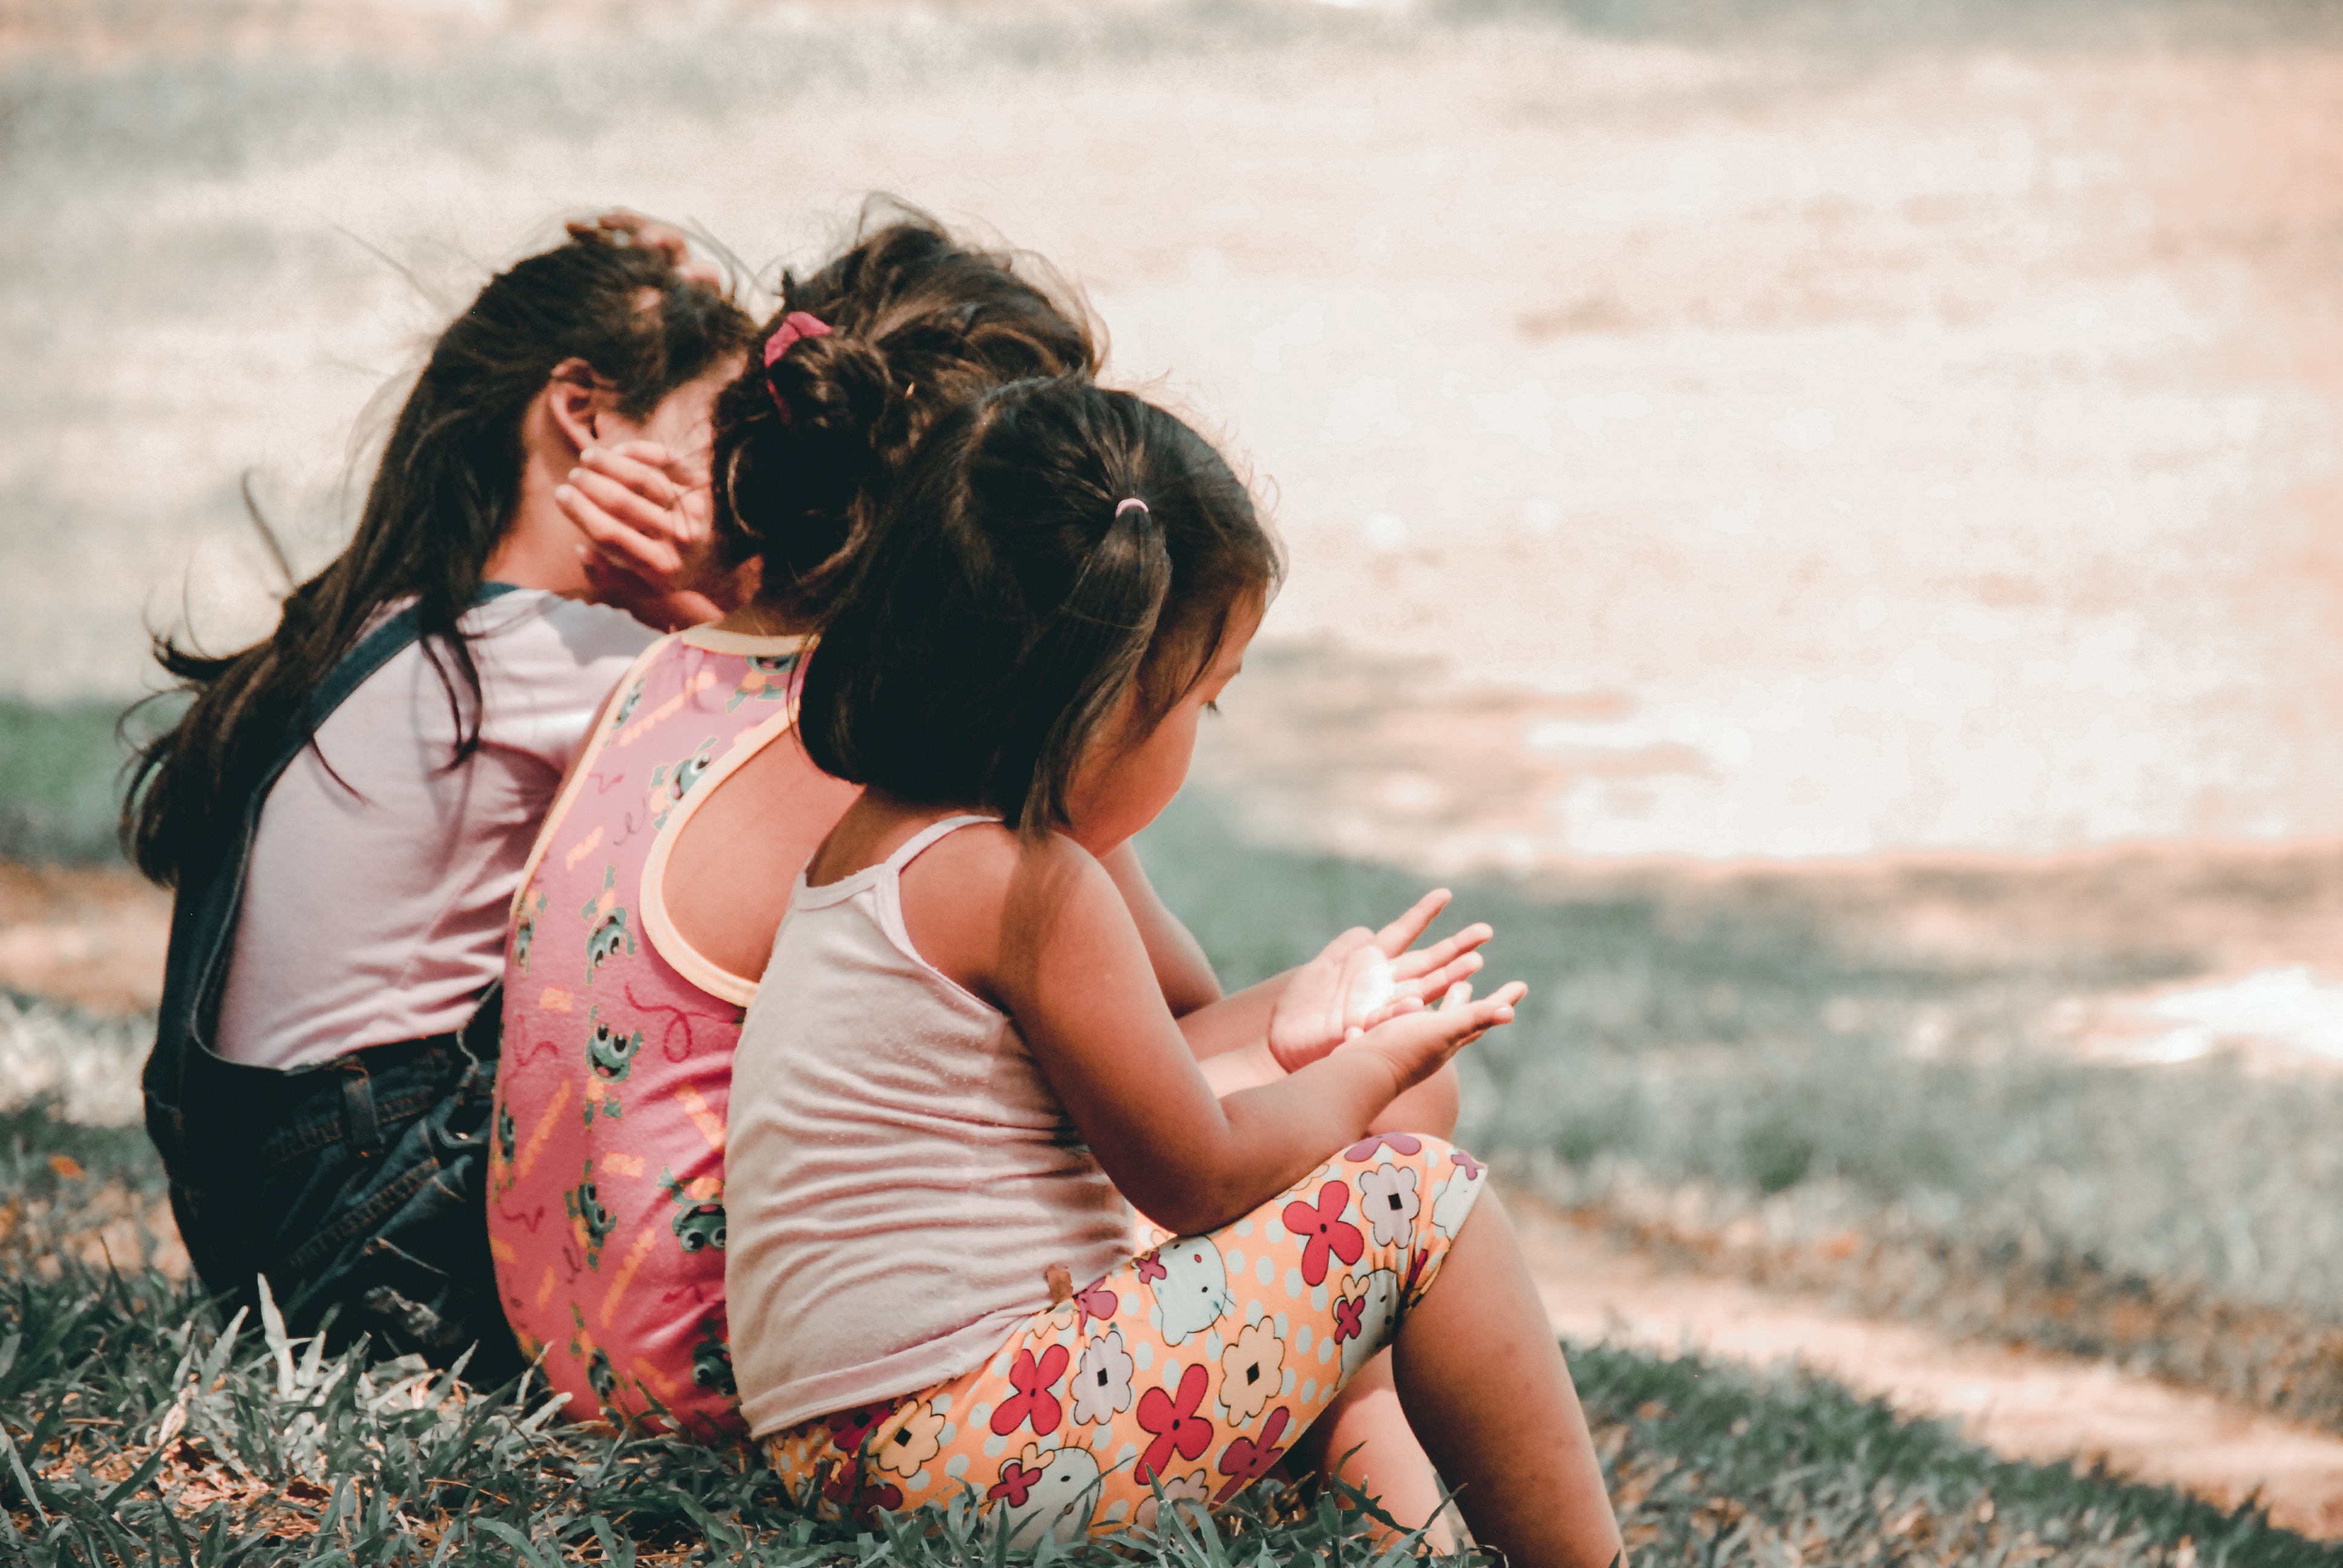 Photo of the three children sitting on the grass and you can only see their backs